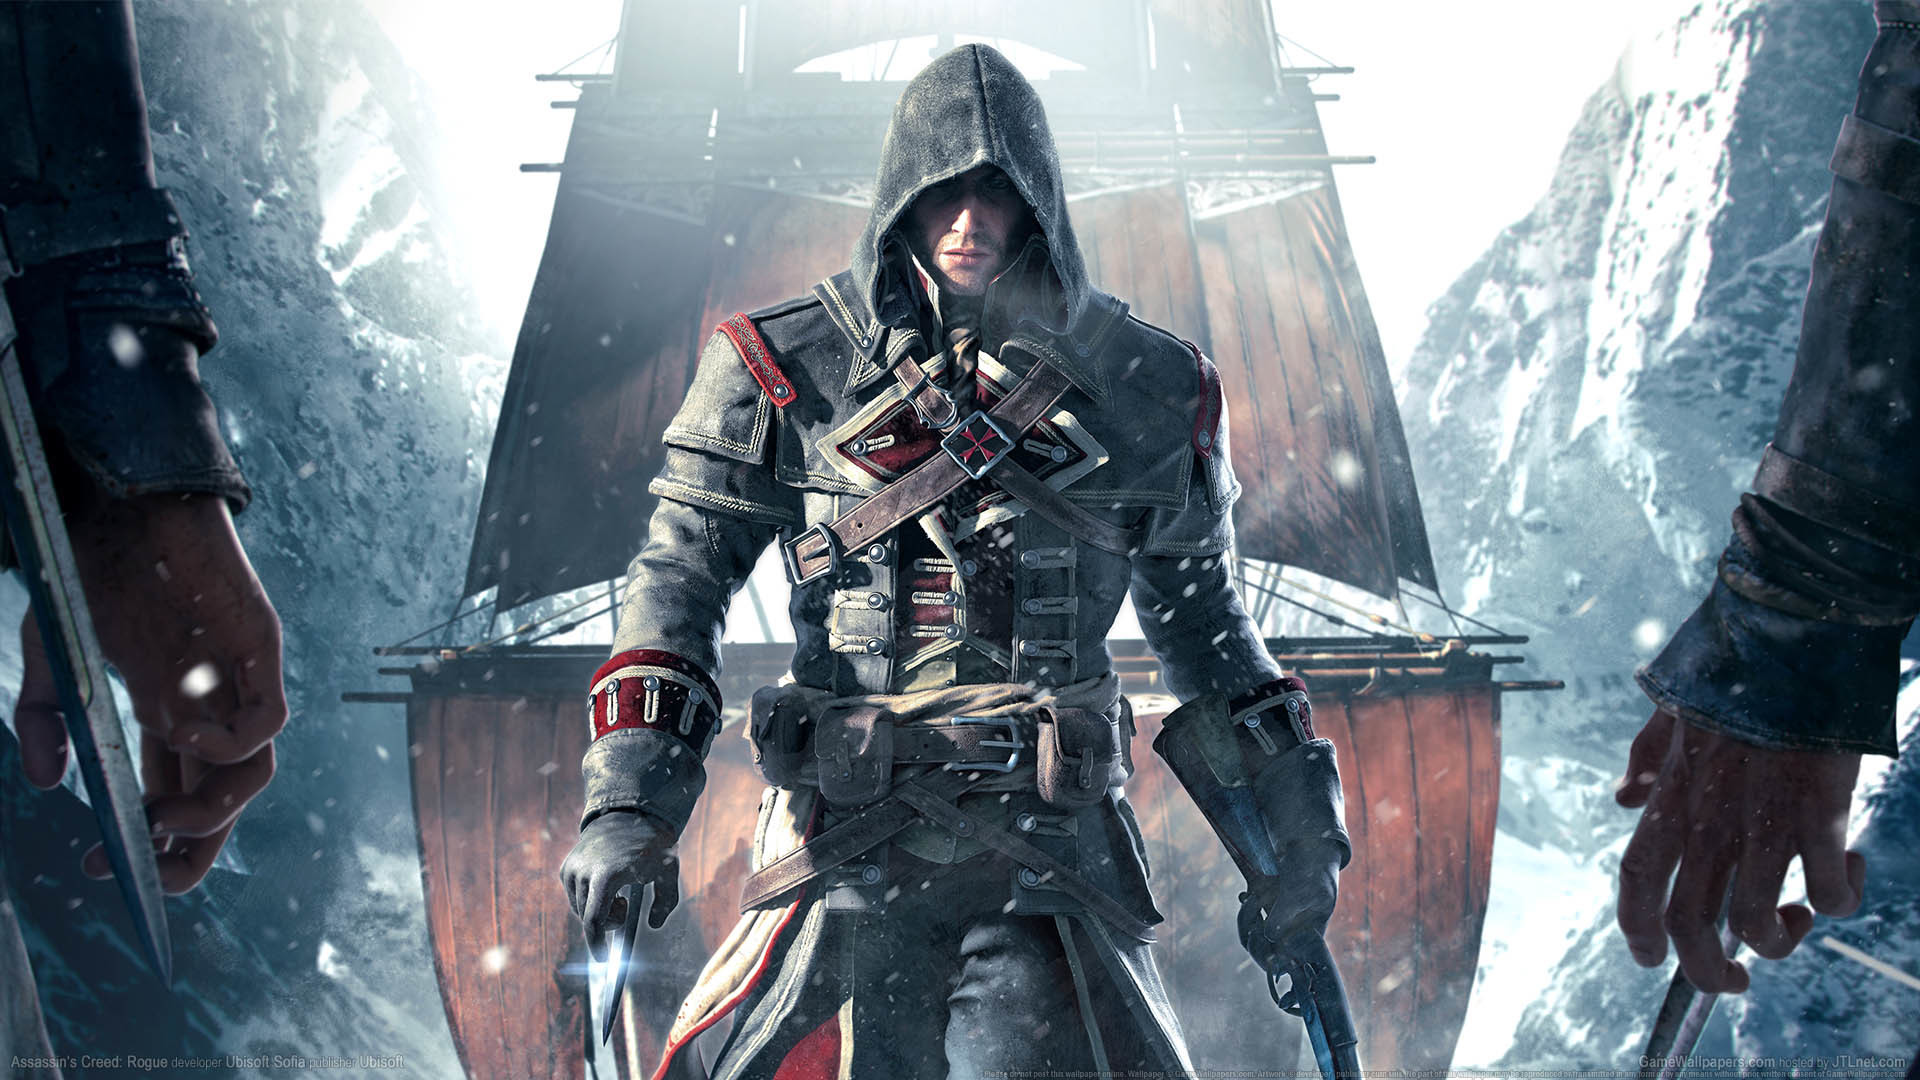 Assassin's Creed: Rogue wallpaper or background Assassin's Creed: Rogue  wallpaper or background 01